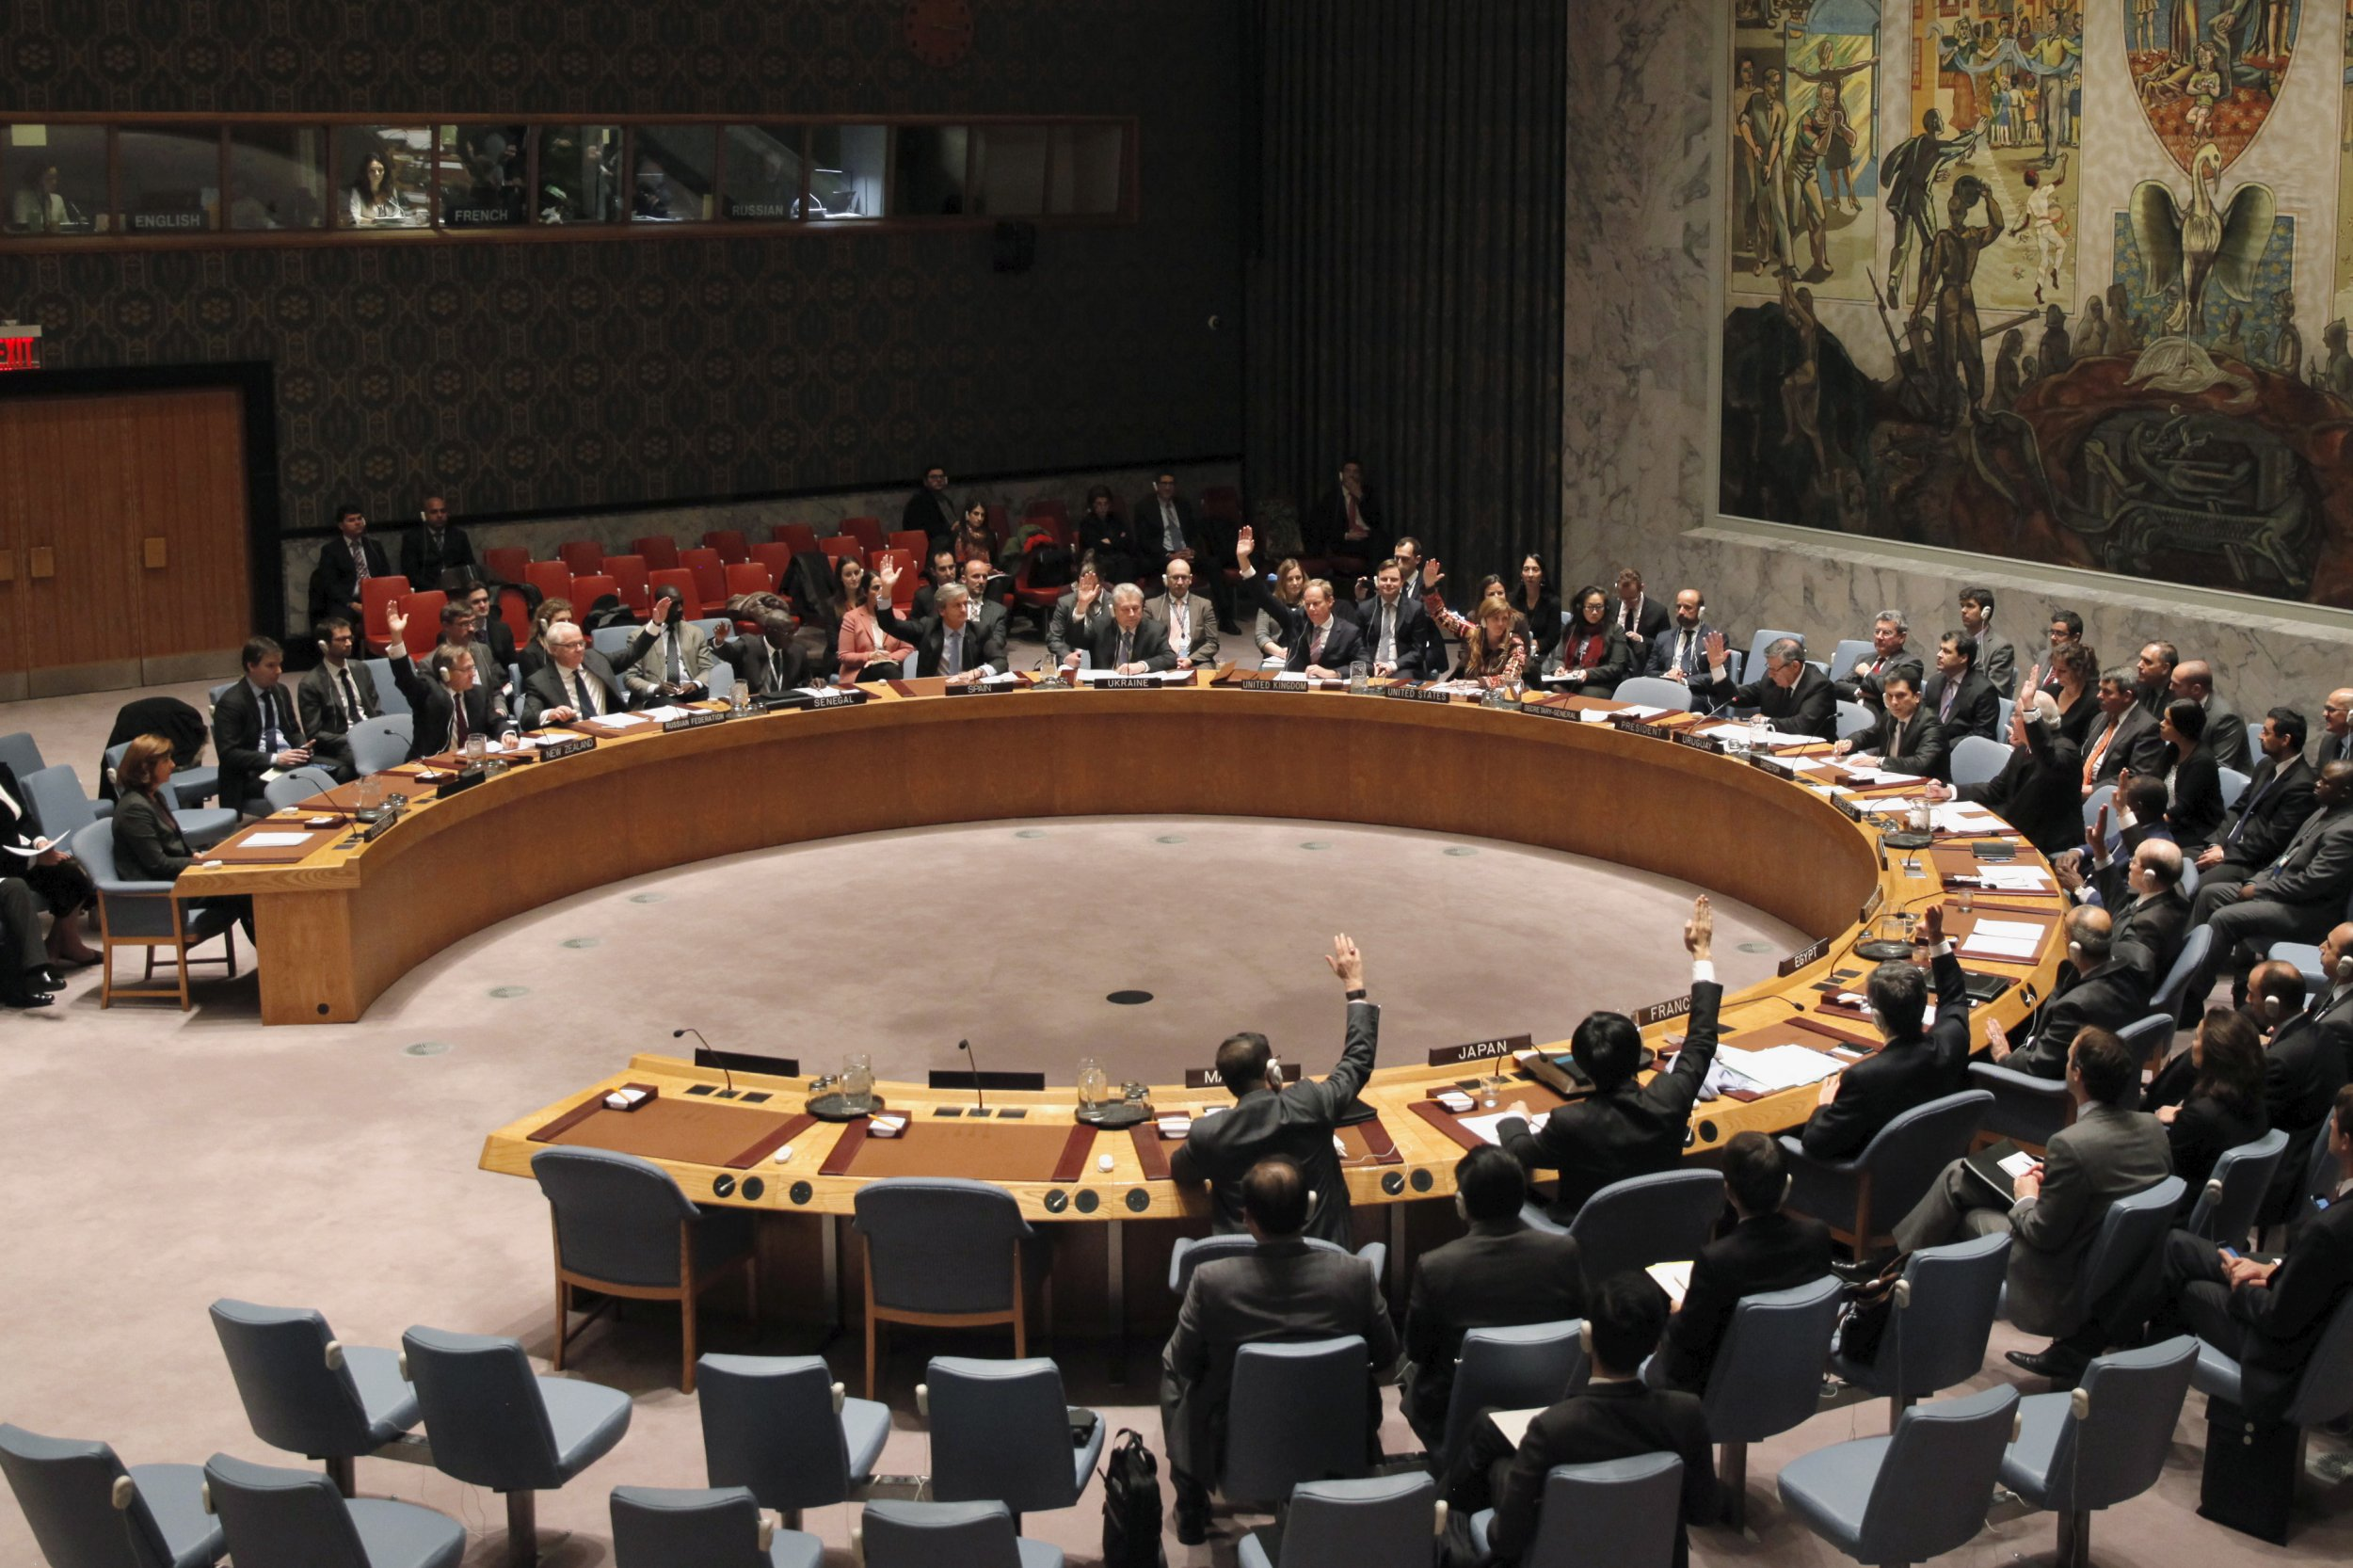 02_01_united_nations_security_council_01